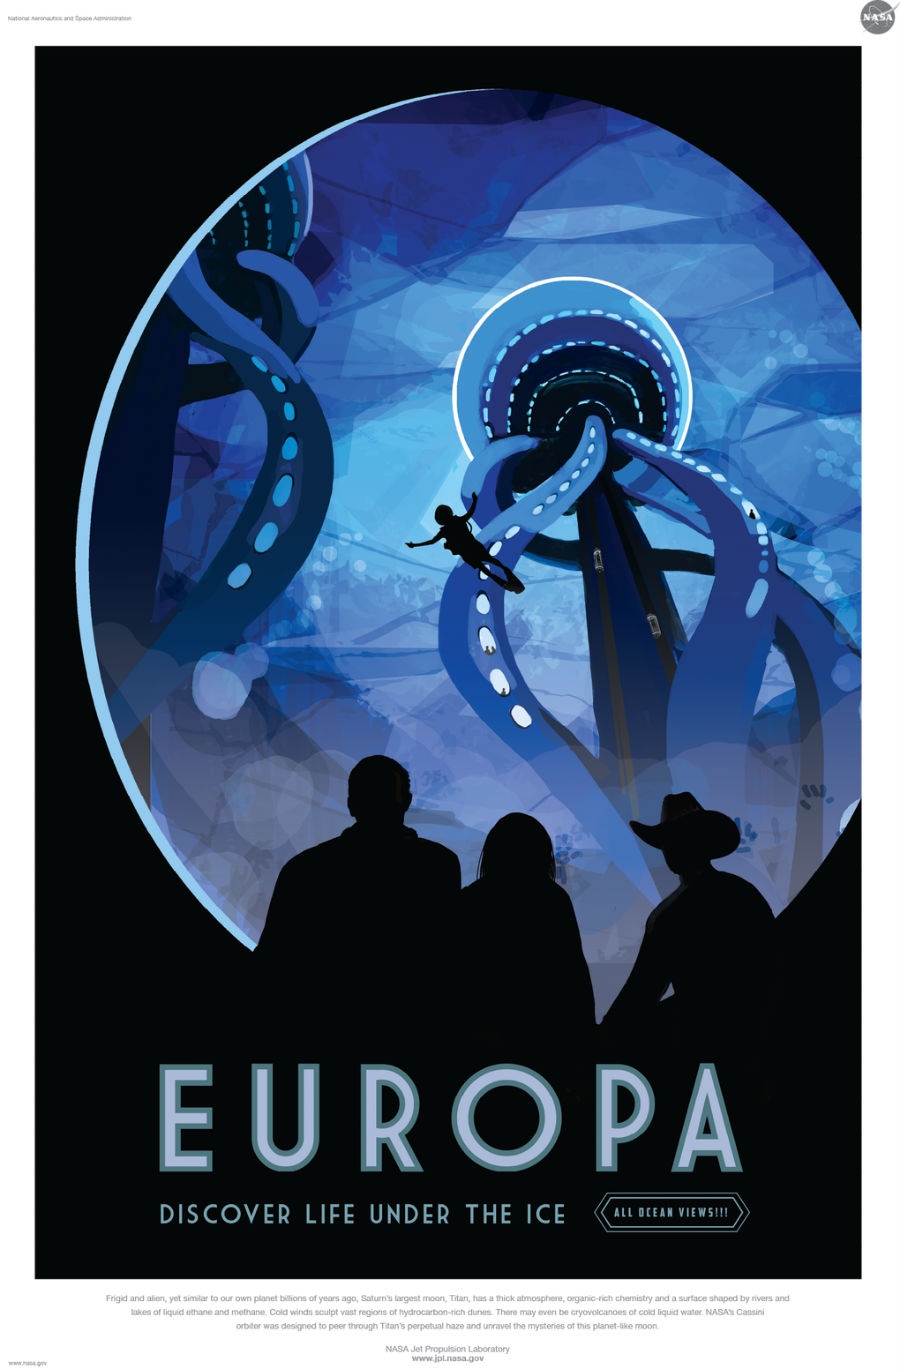 europa-poster